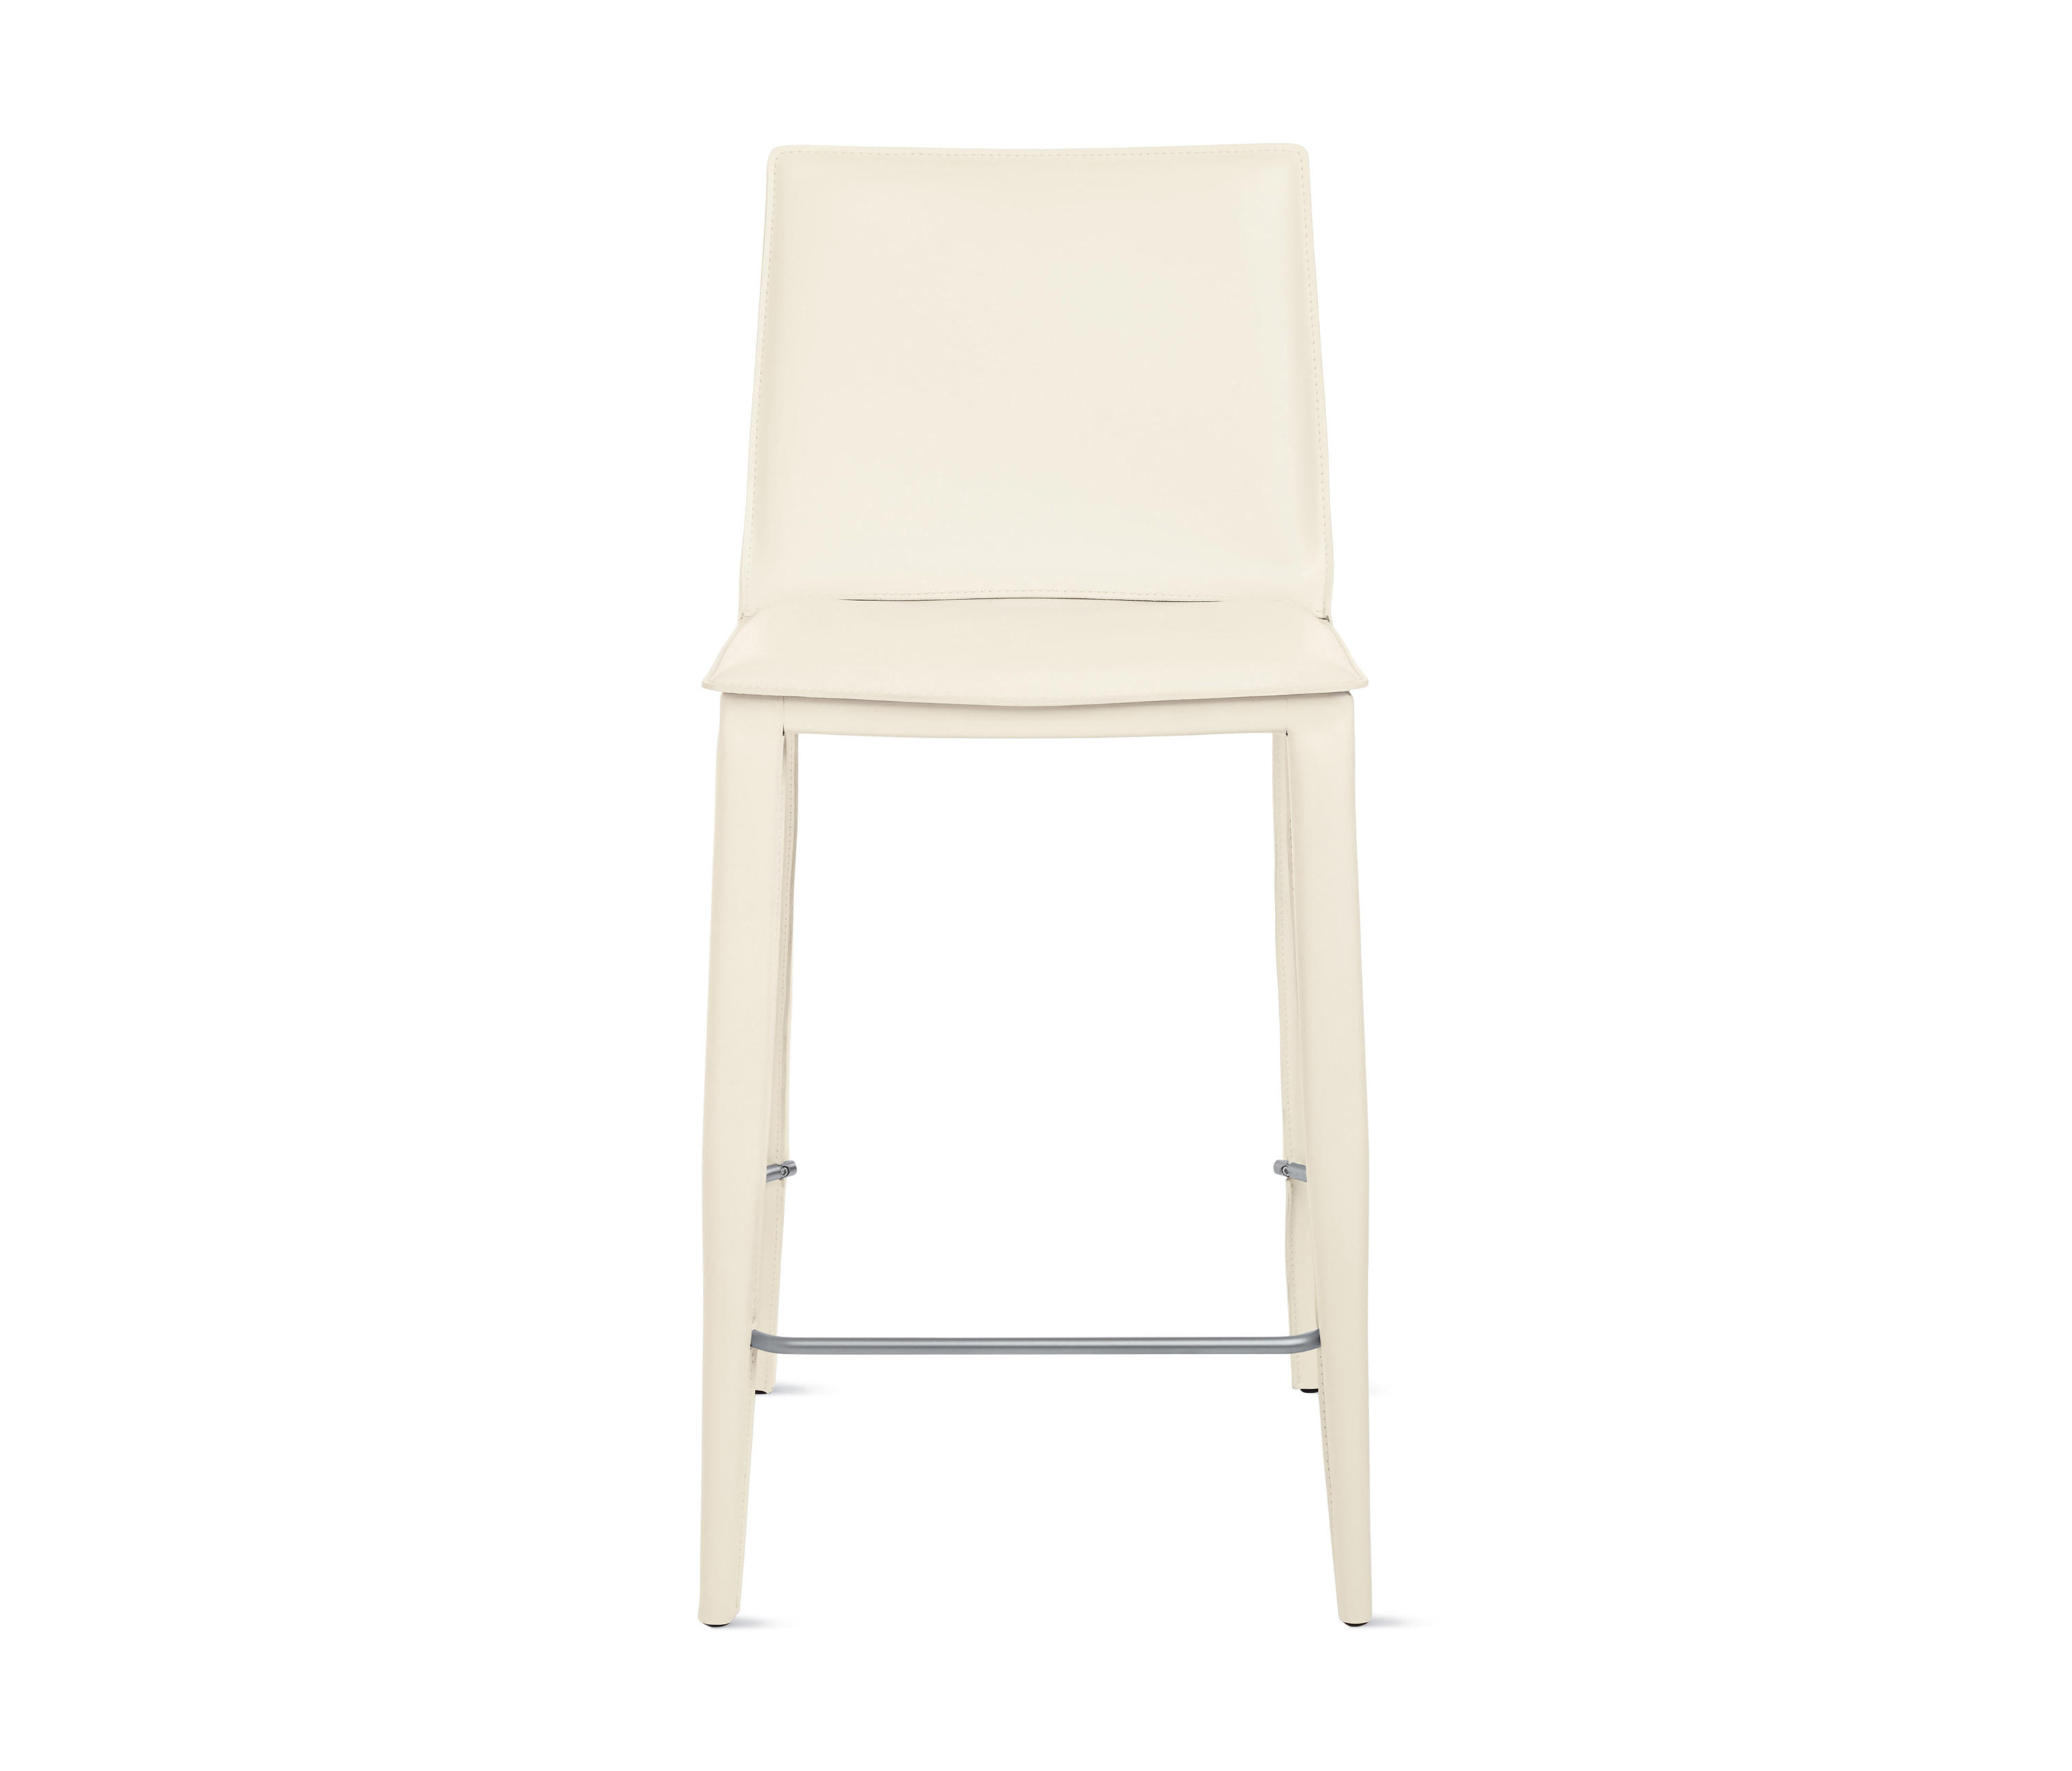 ... Bottega Counter Stool by Design Within Reach   Bar stools ...  sc 1 st  Architonic & BOTTEGA COUNTER STOOL - Bar stools from Design Within Reach ... islam-shia.org